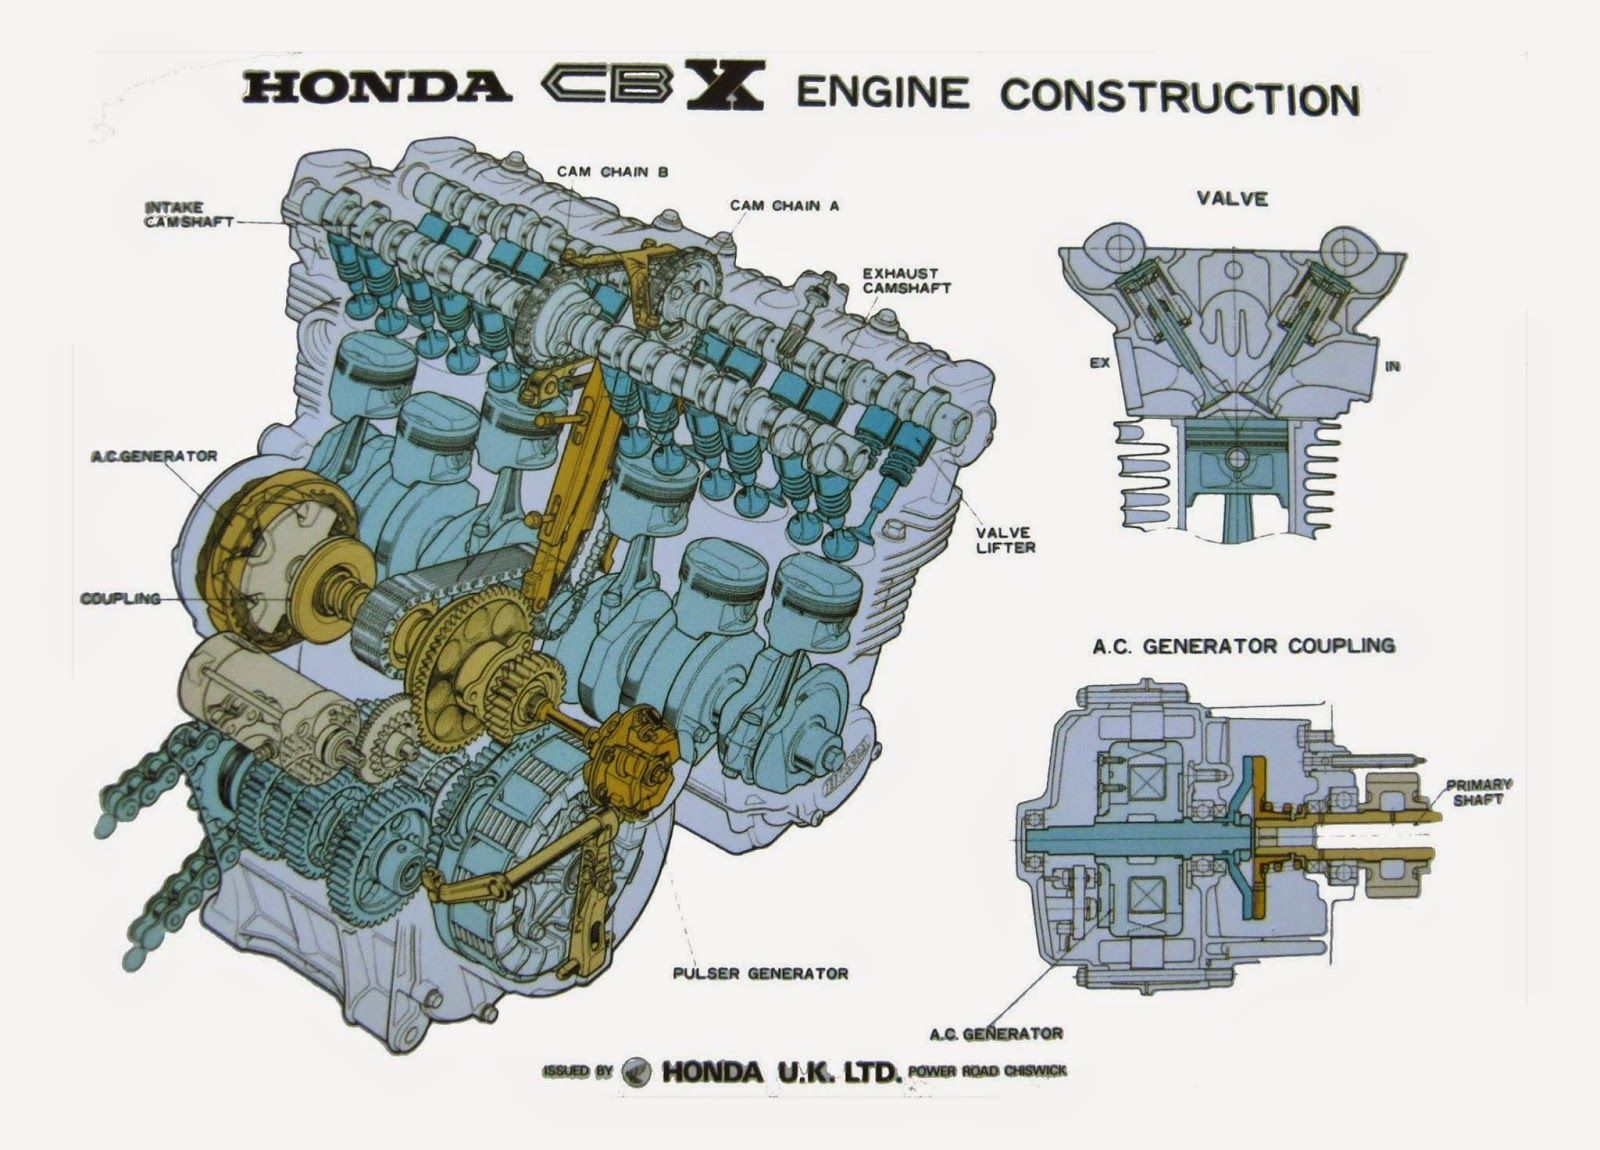 medium resolution of racing caf honda cbx engine diagram motorcycle engines and racing engine diagram racing caf honda cbx